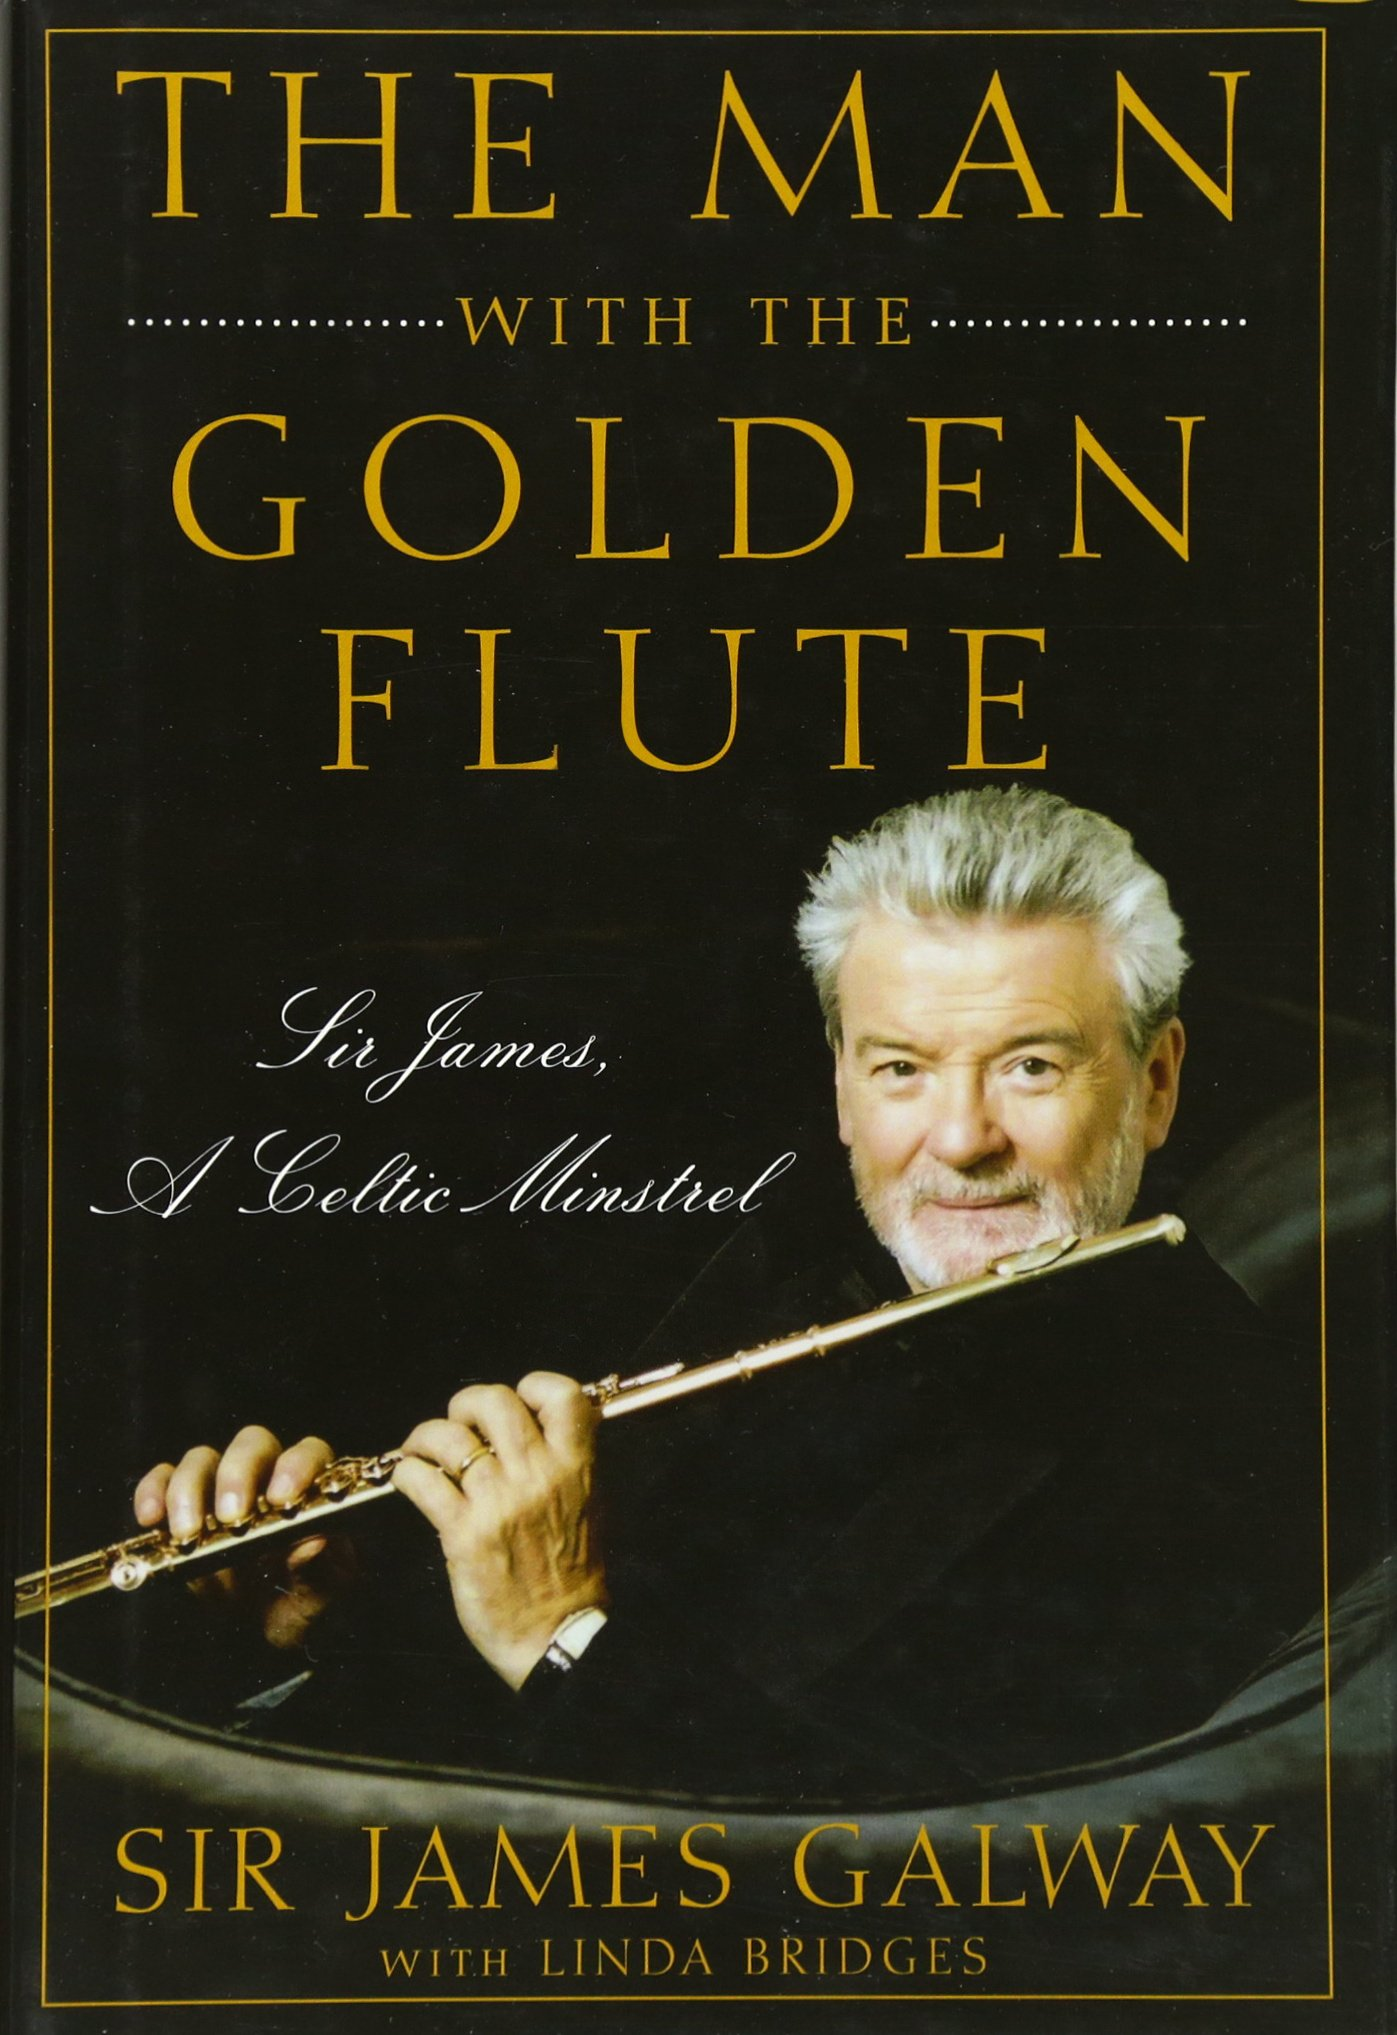 The Man with the Golden Flute: Sir James, a Celtic Minstrel: Sir James  Galway, Linda Bridges: 9780470503911: Books - Amazon.ca